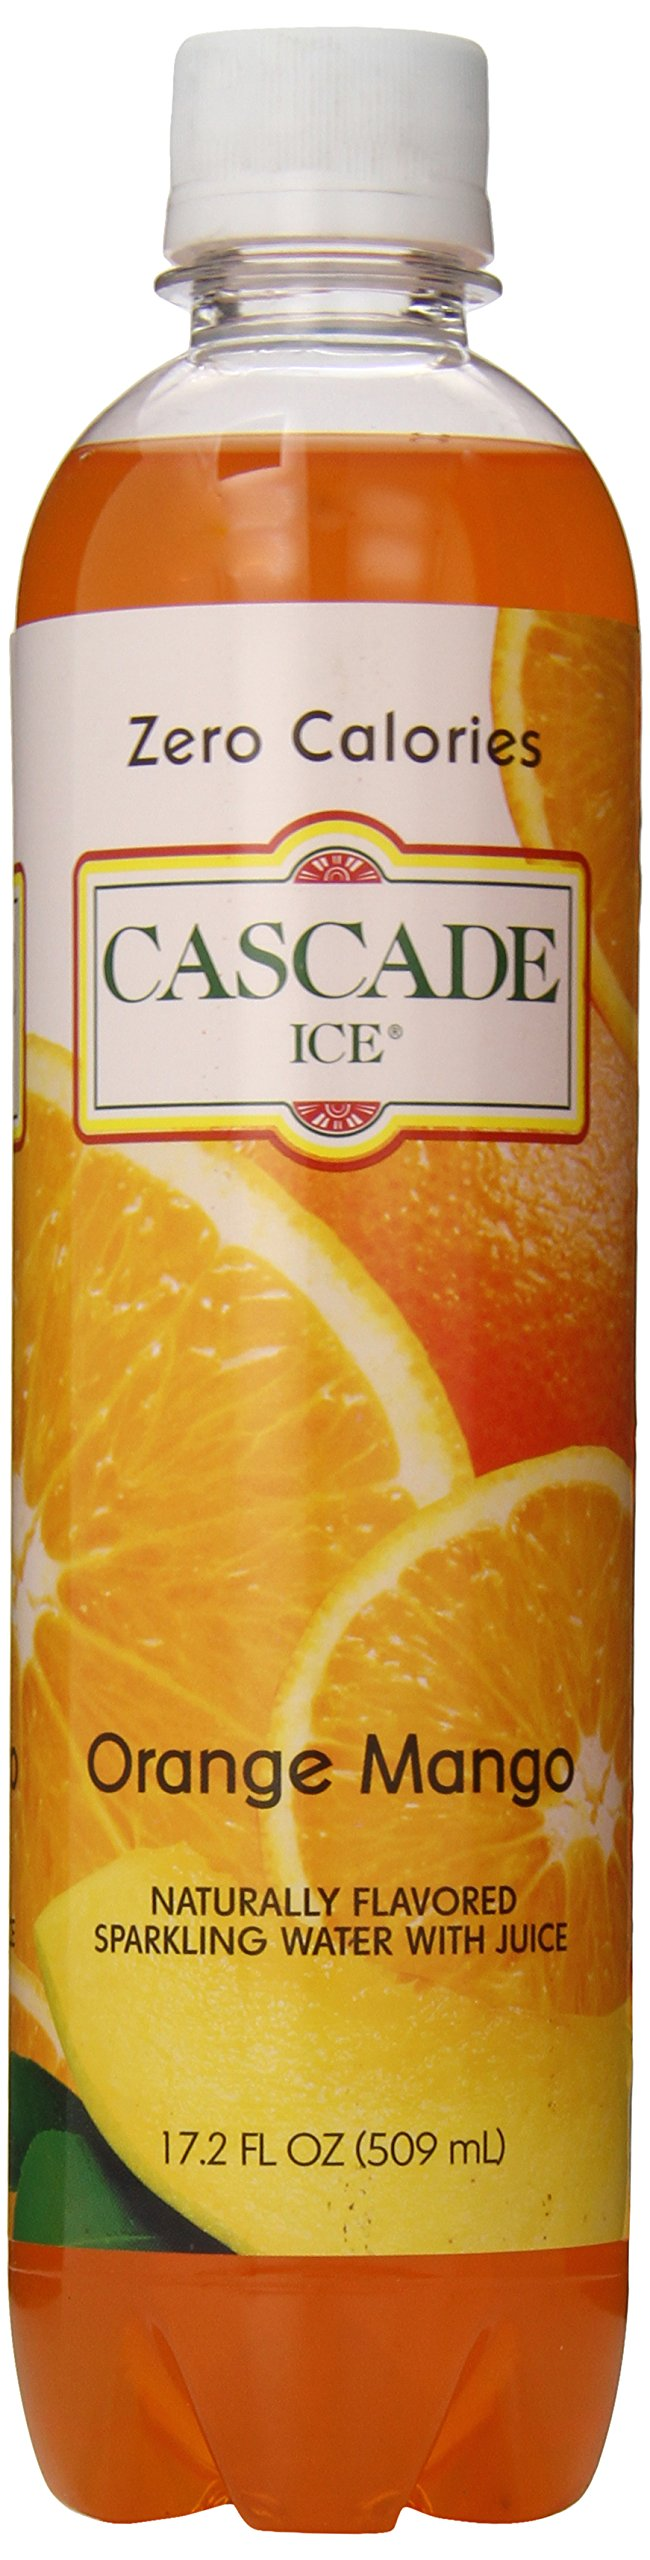 Cascade Ice Sparkling Water, Orange Mango, 17.2 Ounce (Pack of 12) by Cascade Ice